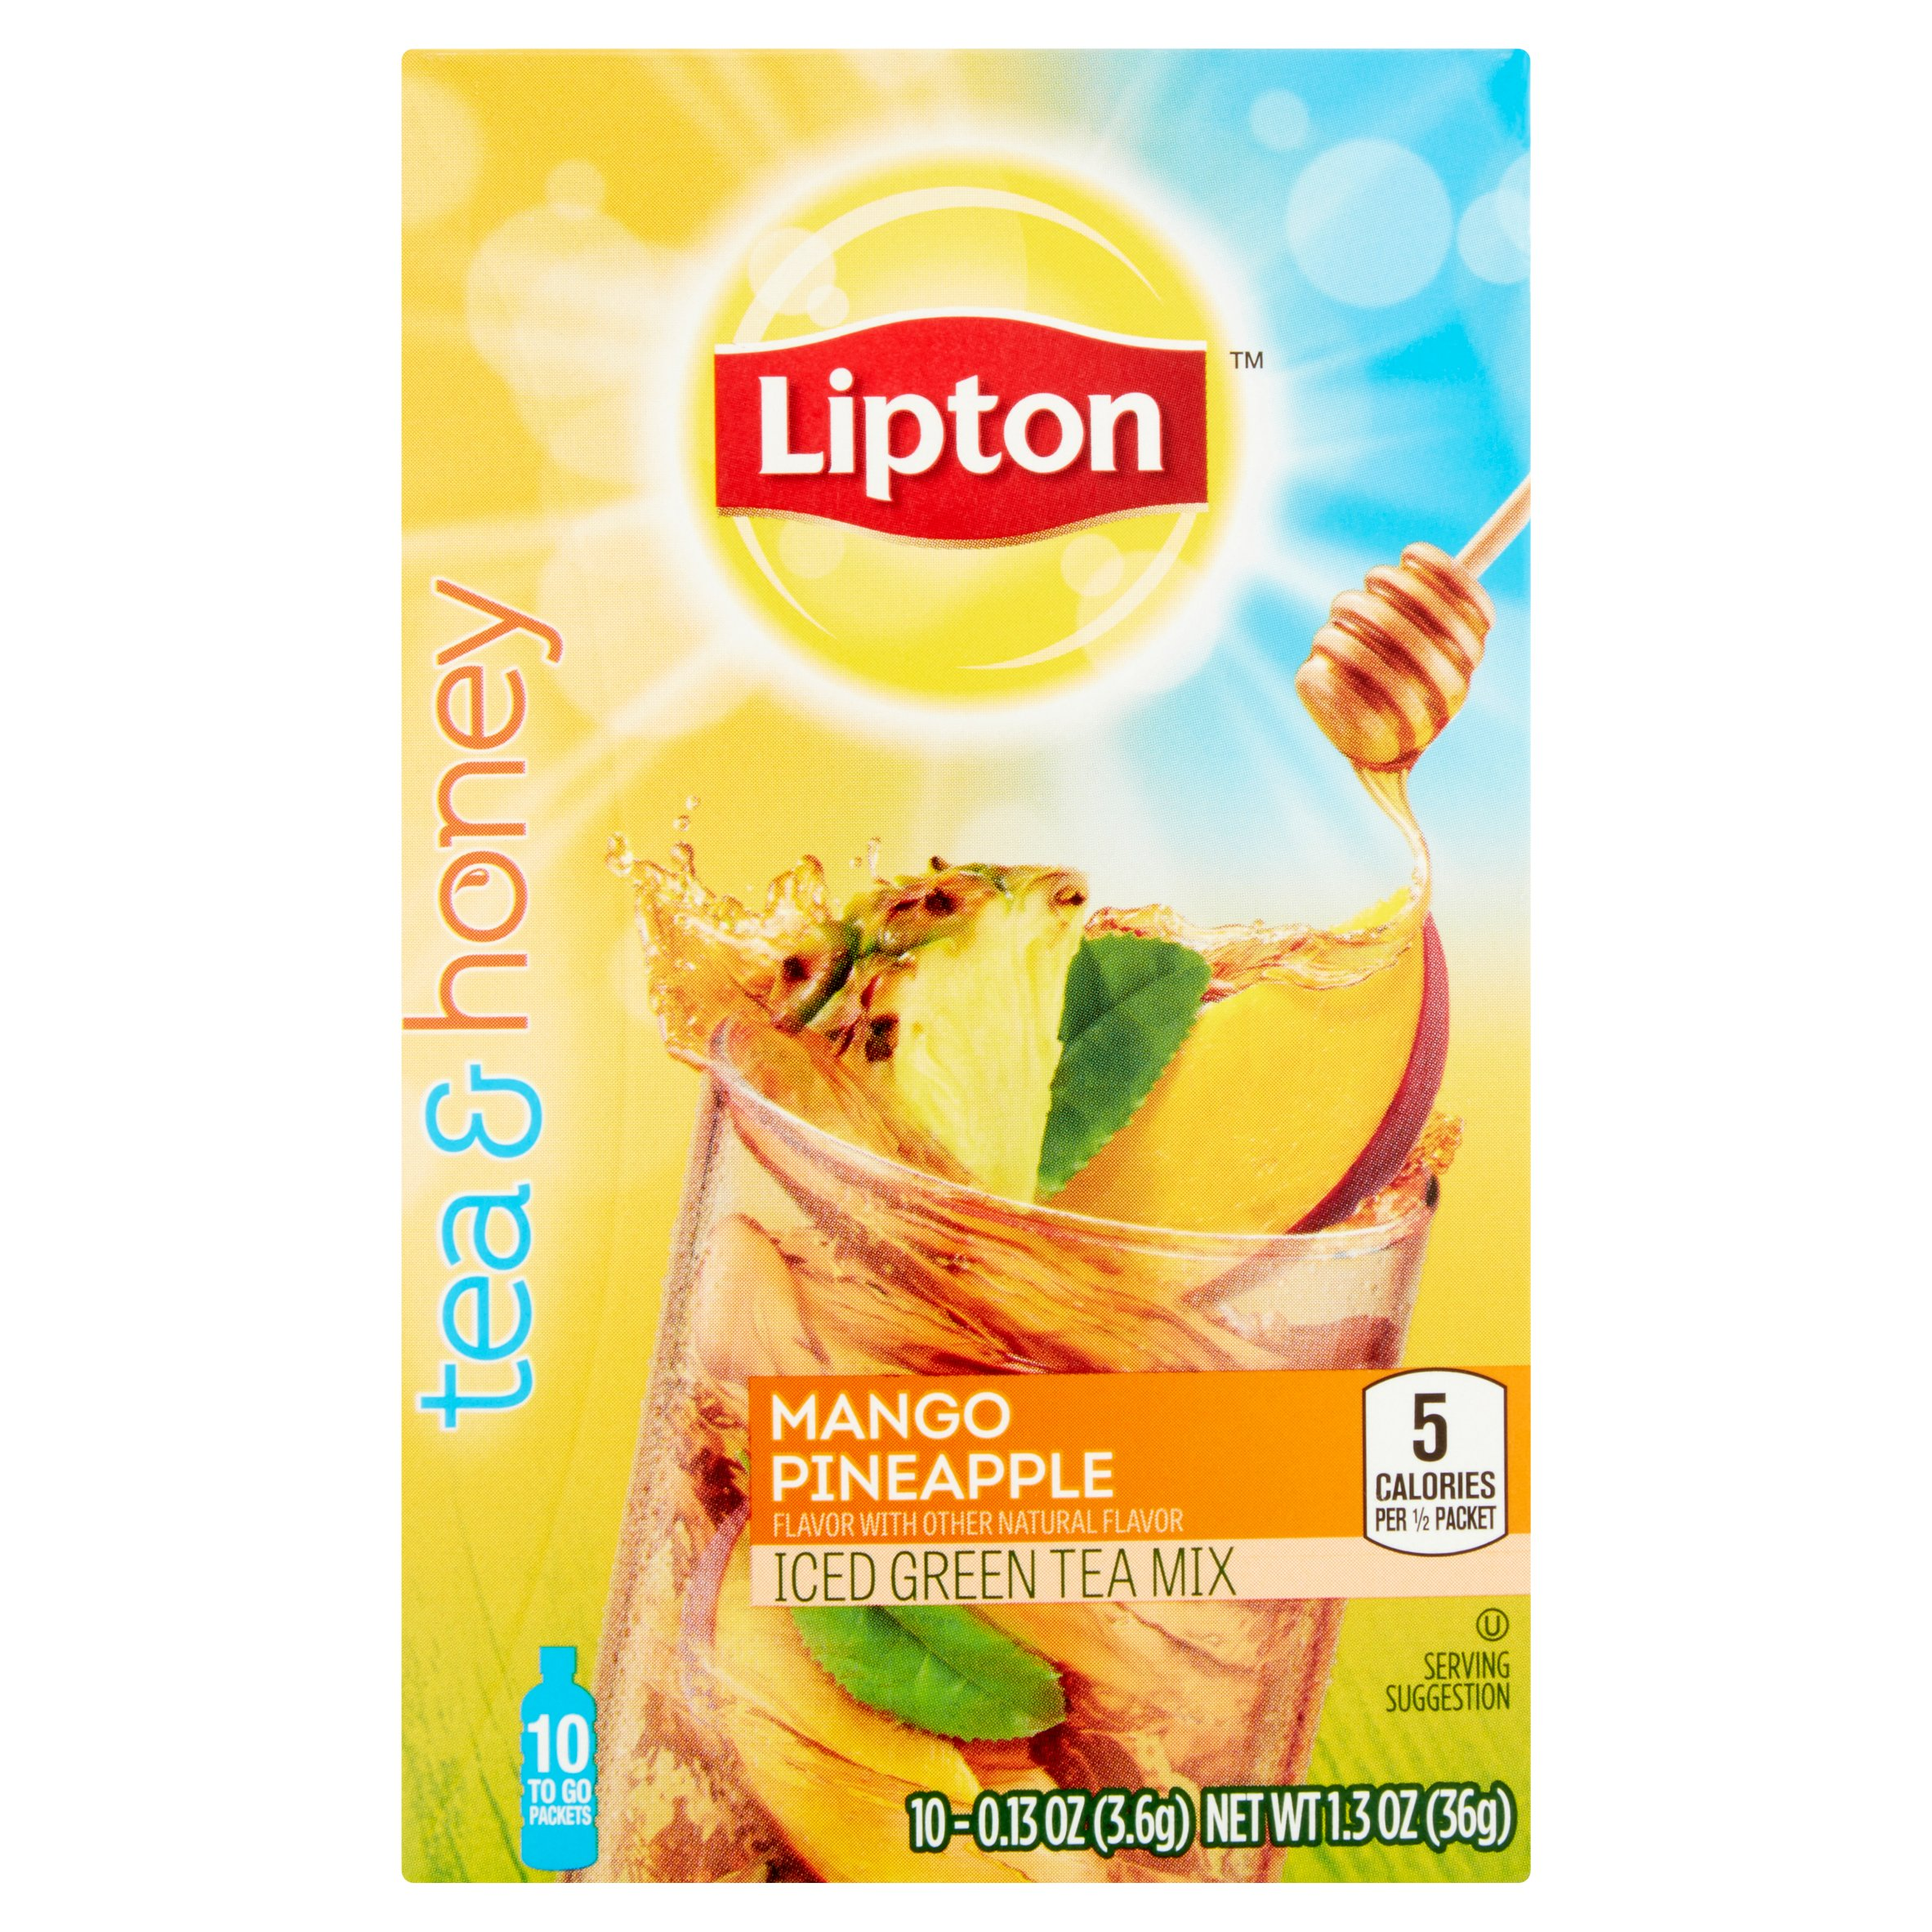 Lipton Mango Pineapple Iced Green Tea To-Go Packets 10 ct